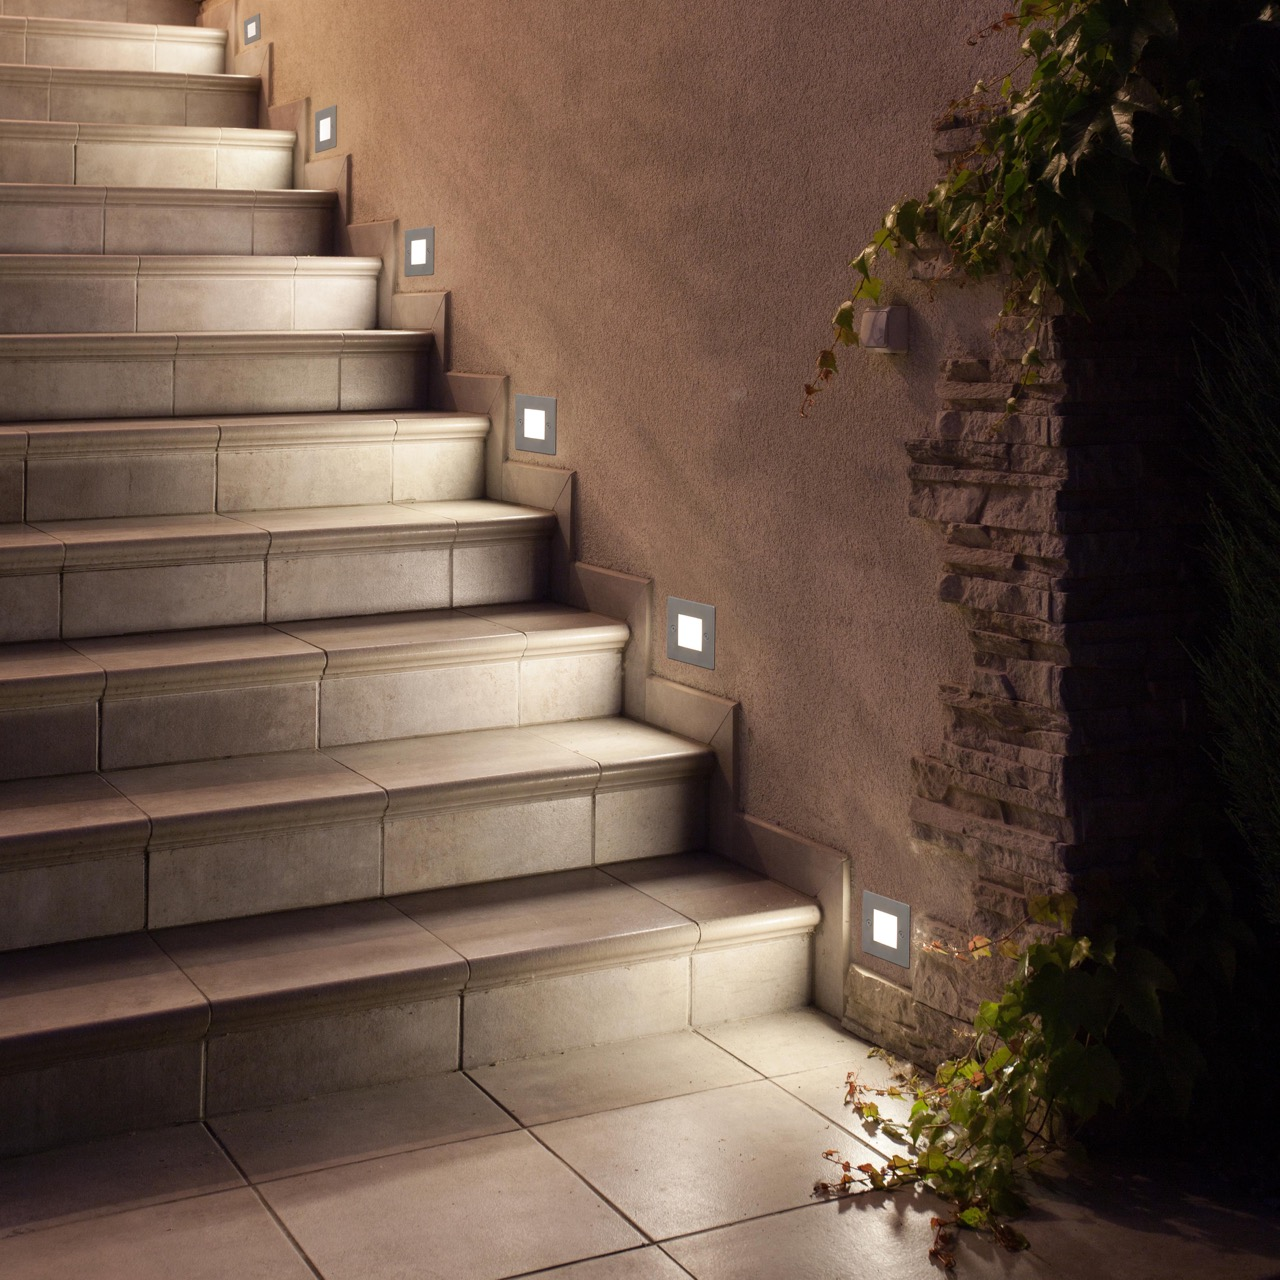 Luces para jardin exterior cheap luces de jardin solares for Luces patio exterior